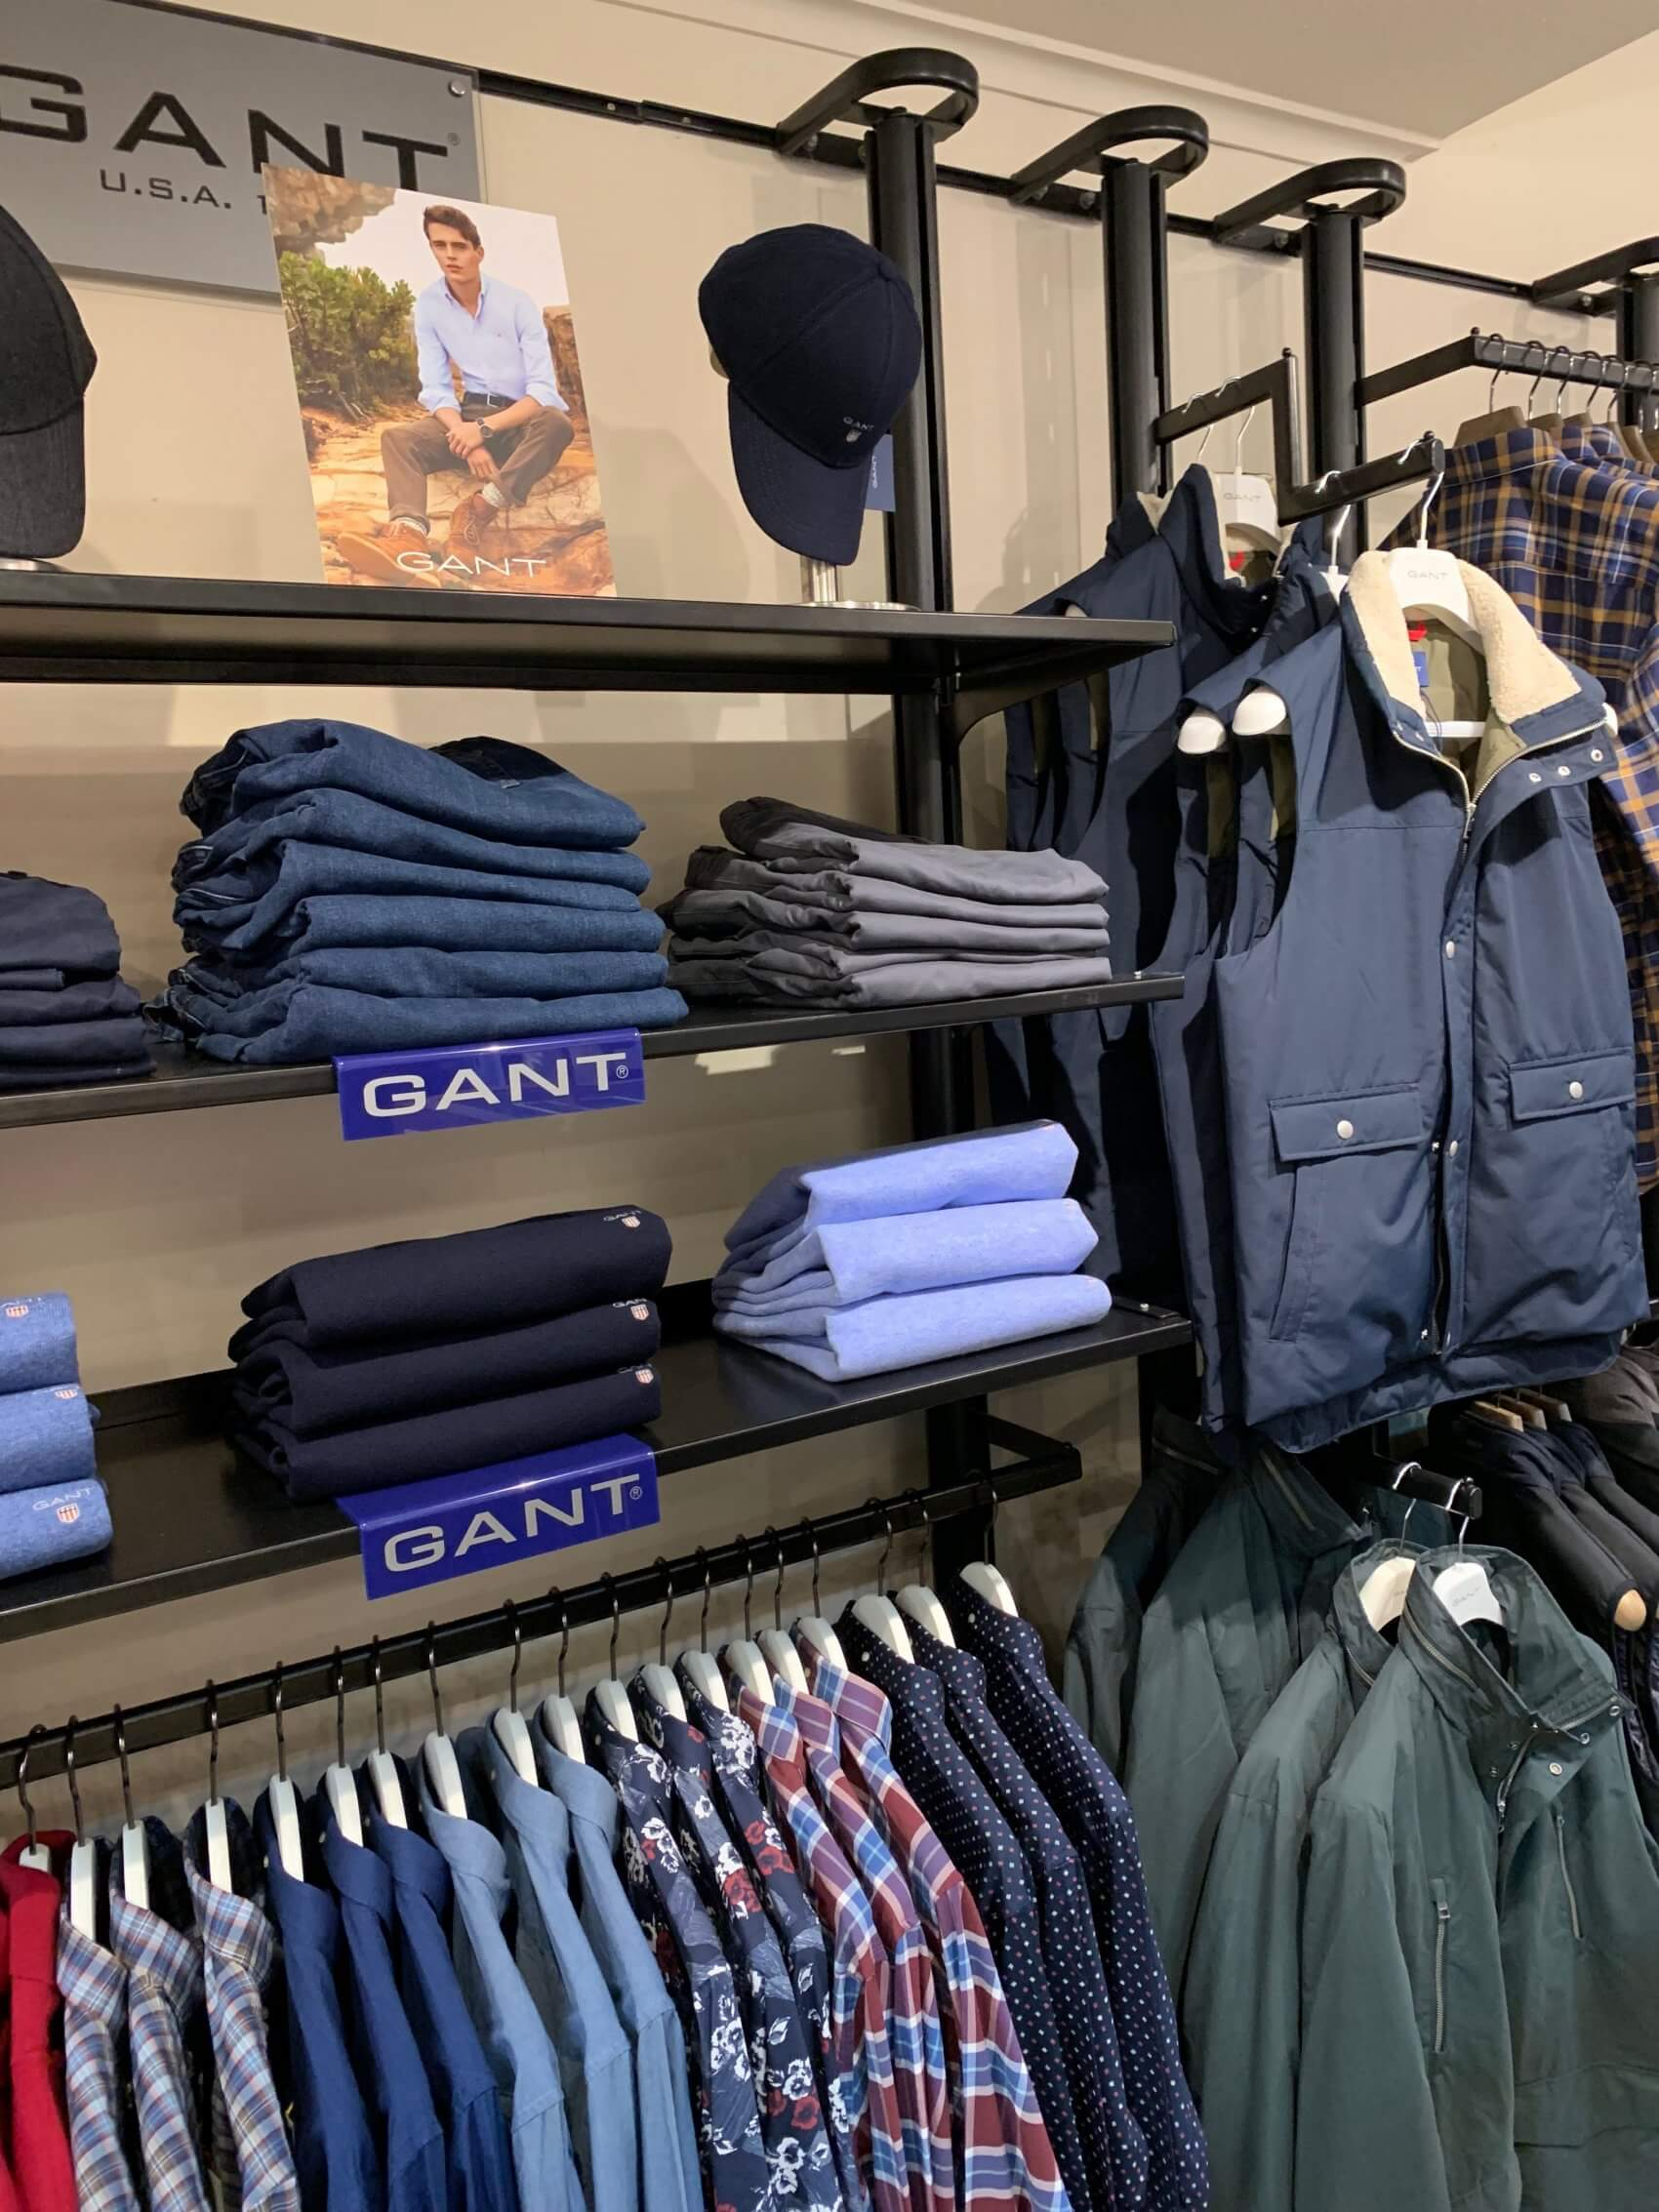 Gant Clothing | The Mustcard